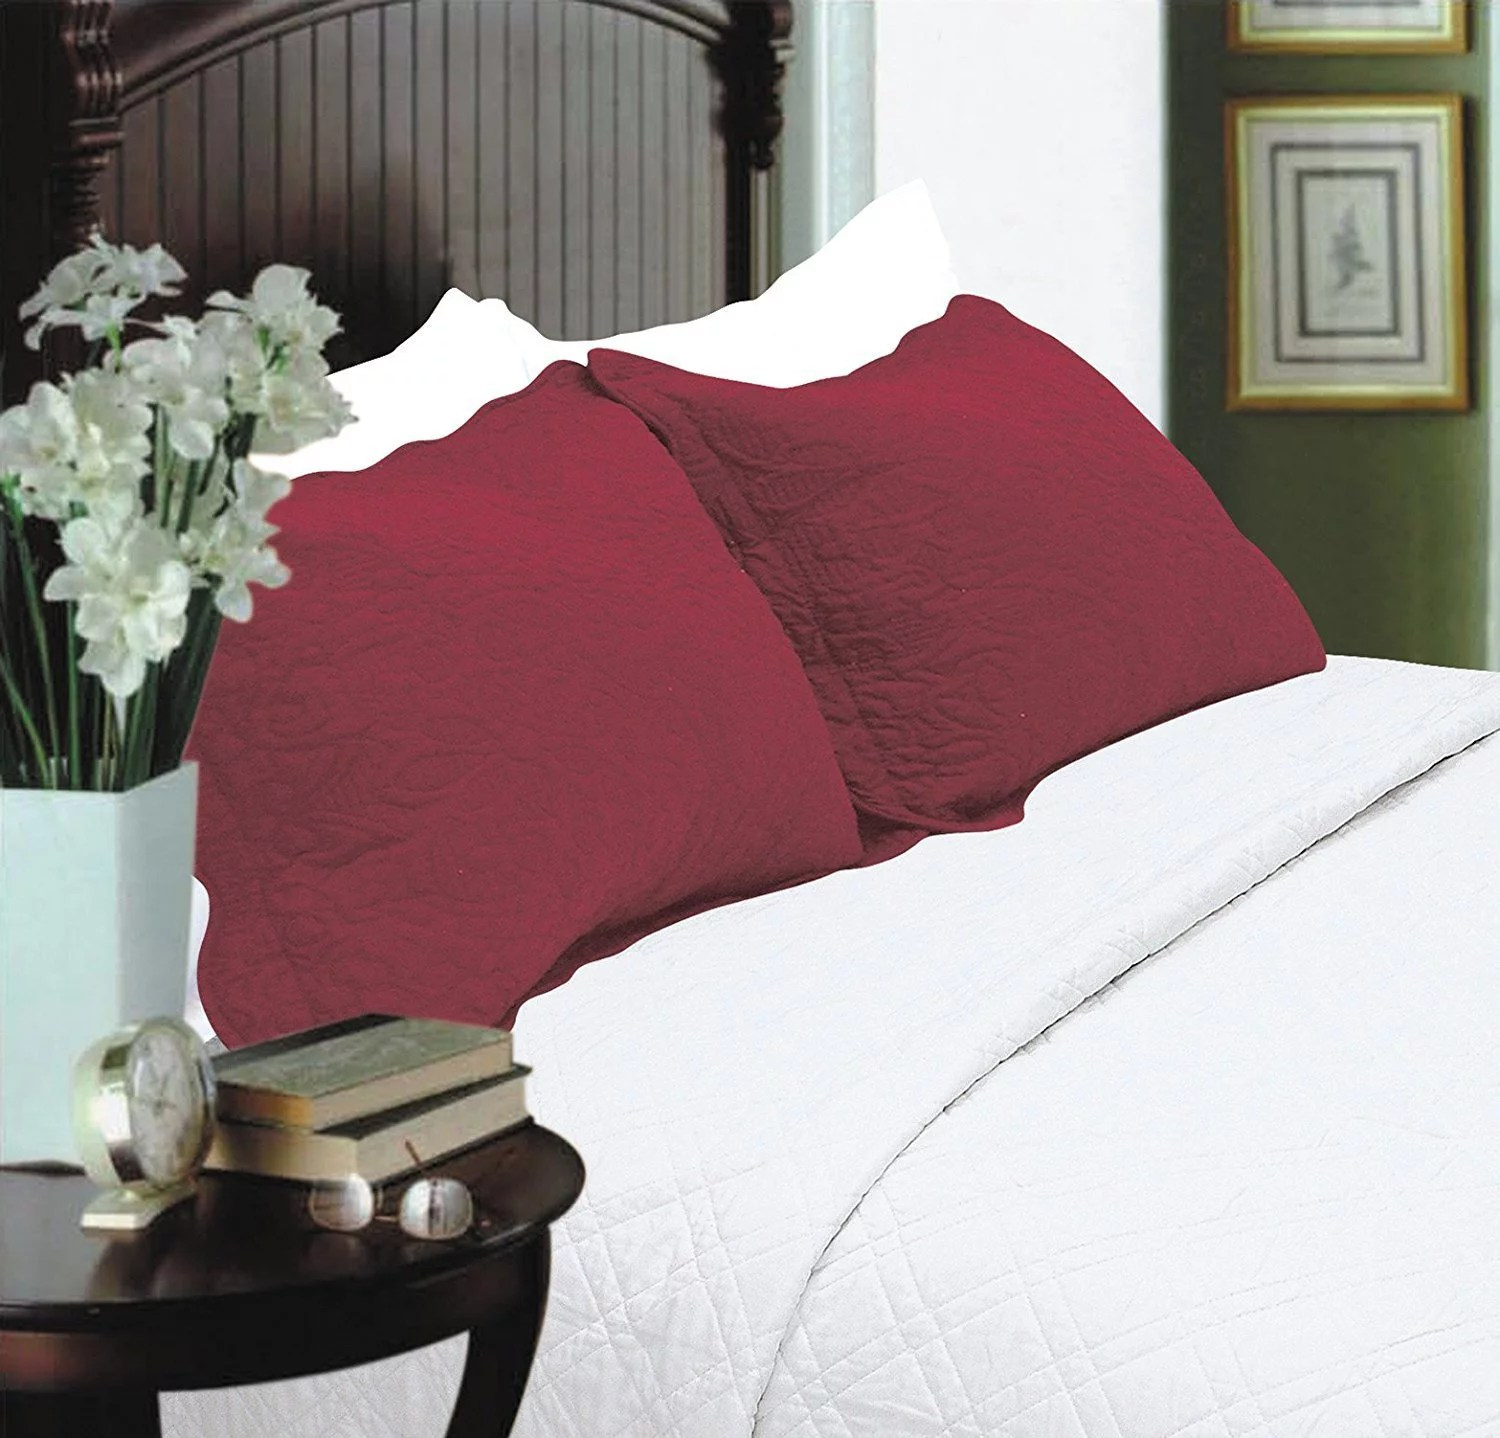 all for you 2 piece embroidered quilted pillow shams king size total 10 colors burgundy red